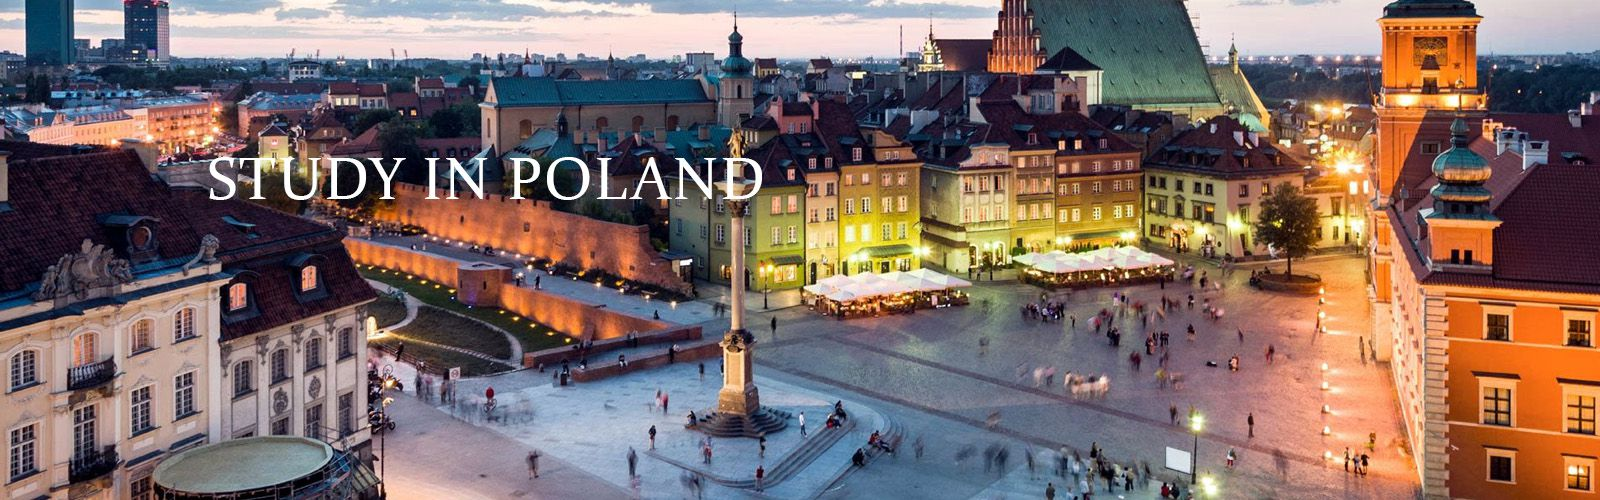 Study In Poland Education Consultants In Amritsar, Punjab & Chandigarh